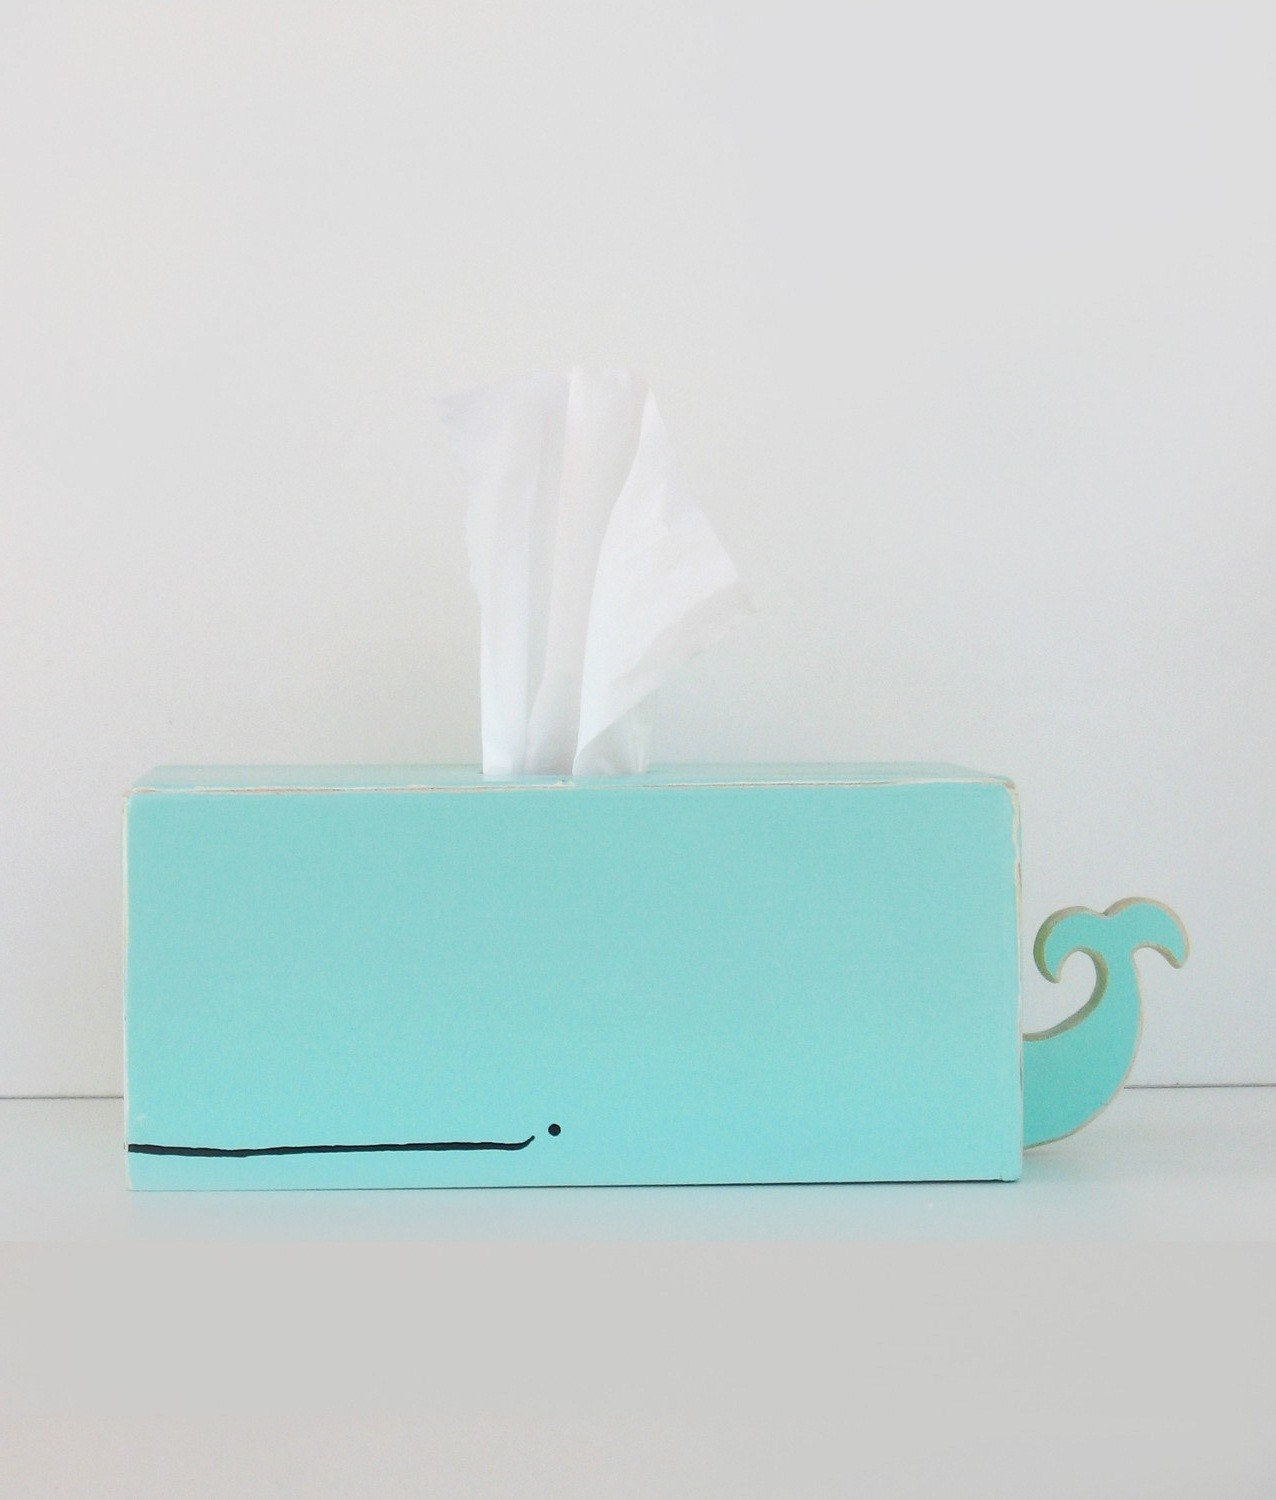 Whale Tissue Holder - Light Blue - July 4 Special